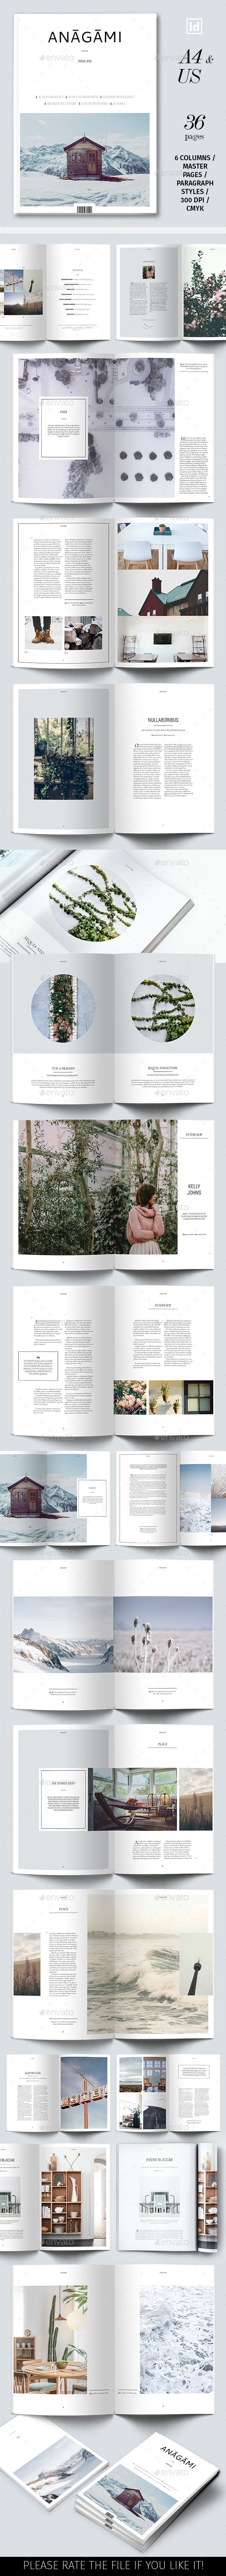 Anagami #Magazine Template - Magazines #Print #Templates Download here: https://graphicriver.net/item/anagami-magazine-template/19334749?ref=alena994